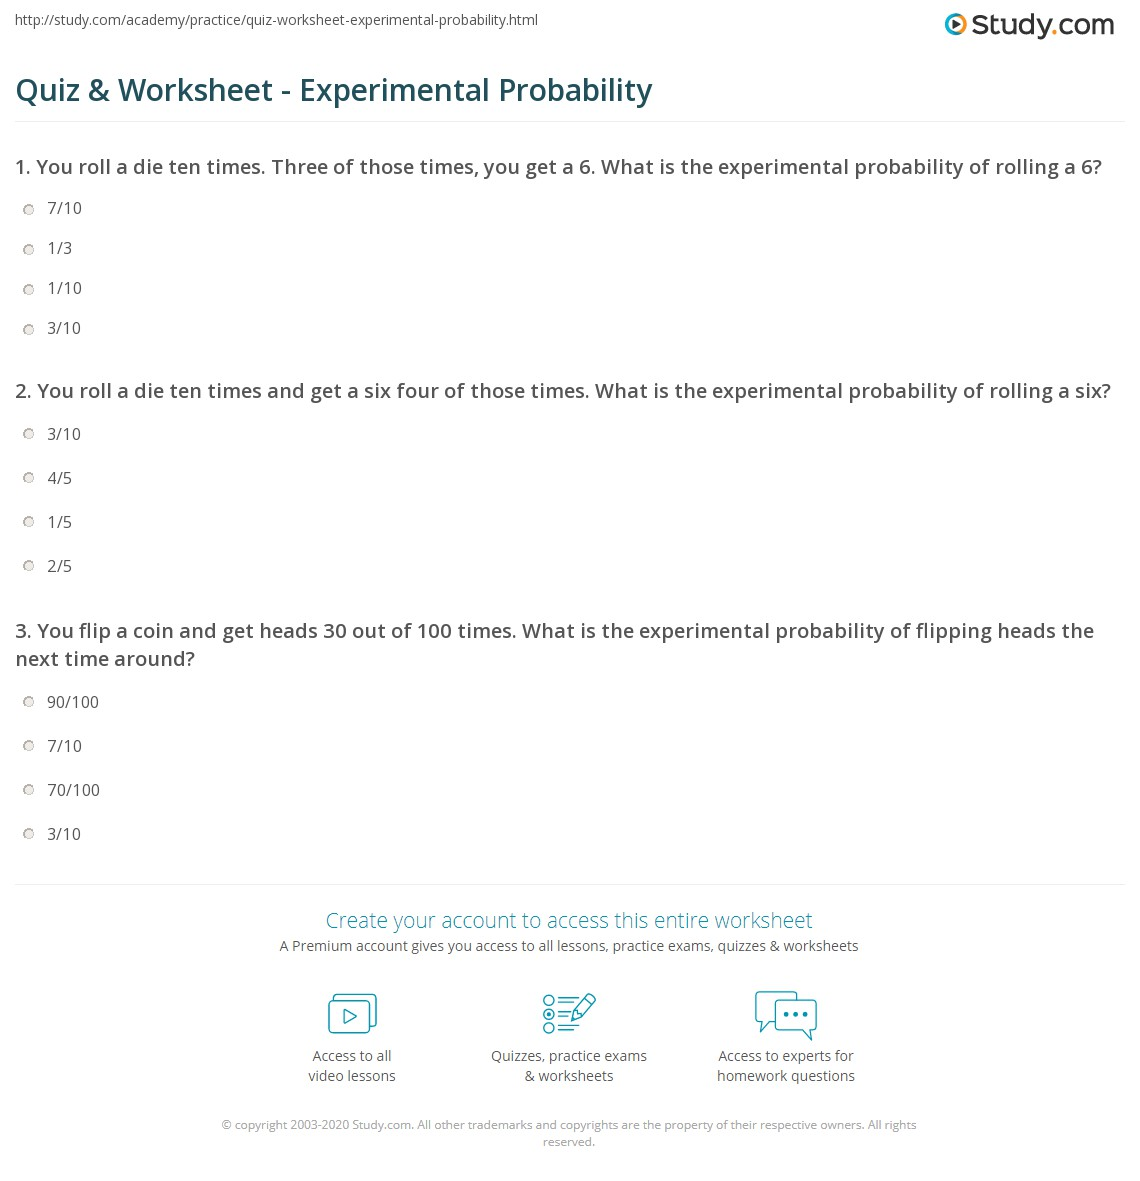 quiz worksheet experimental probability. Black Bedroom Furniture Sets. Home Design Ideas